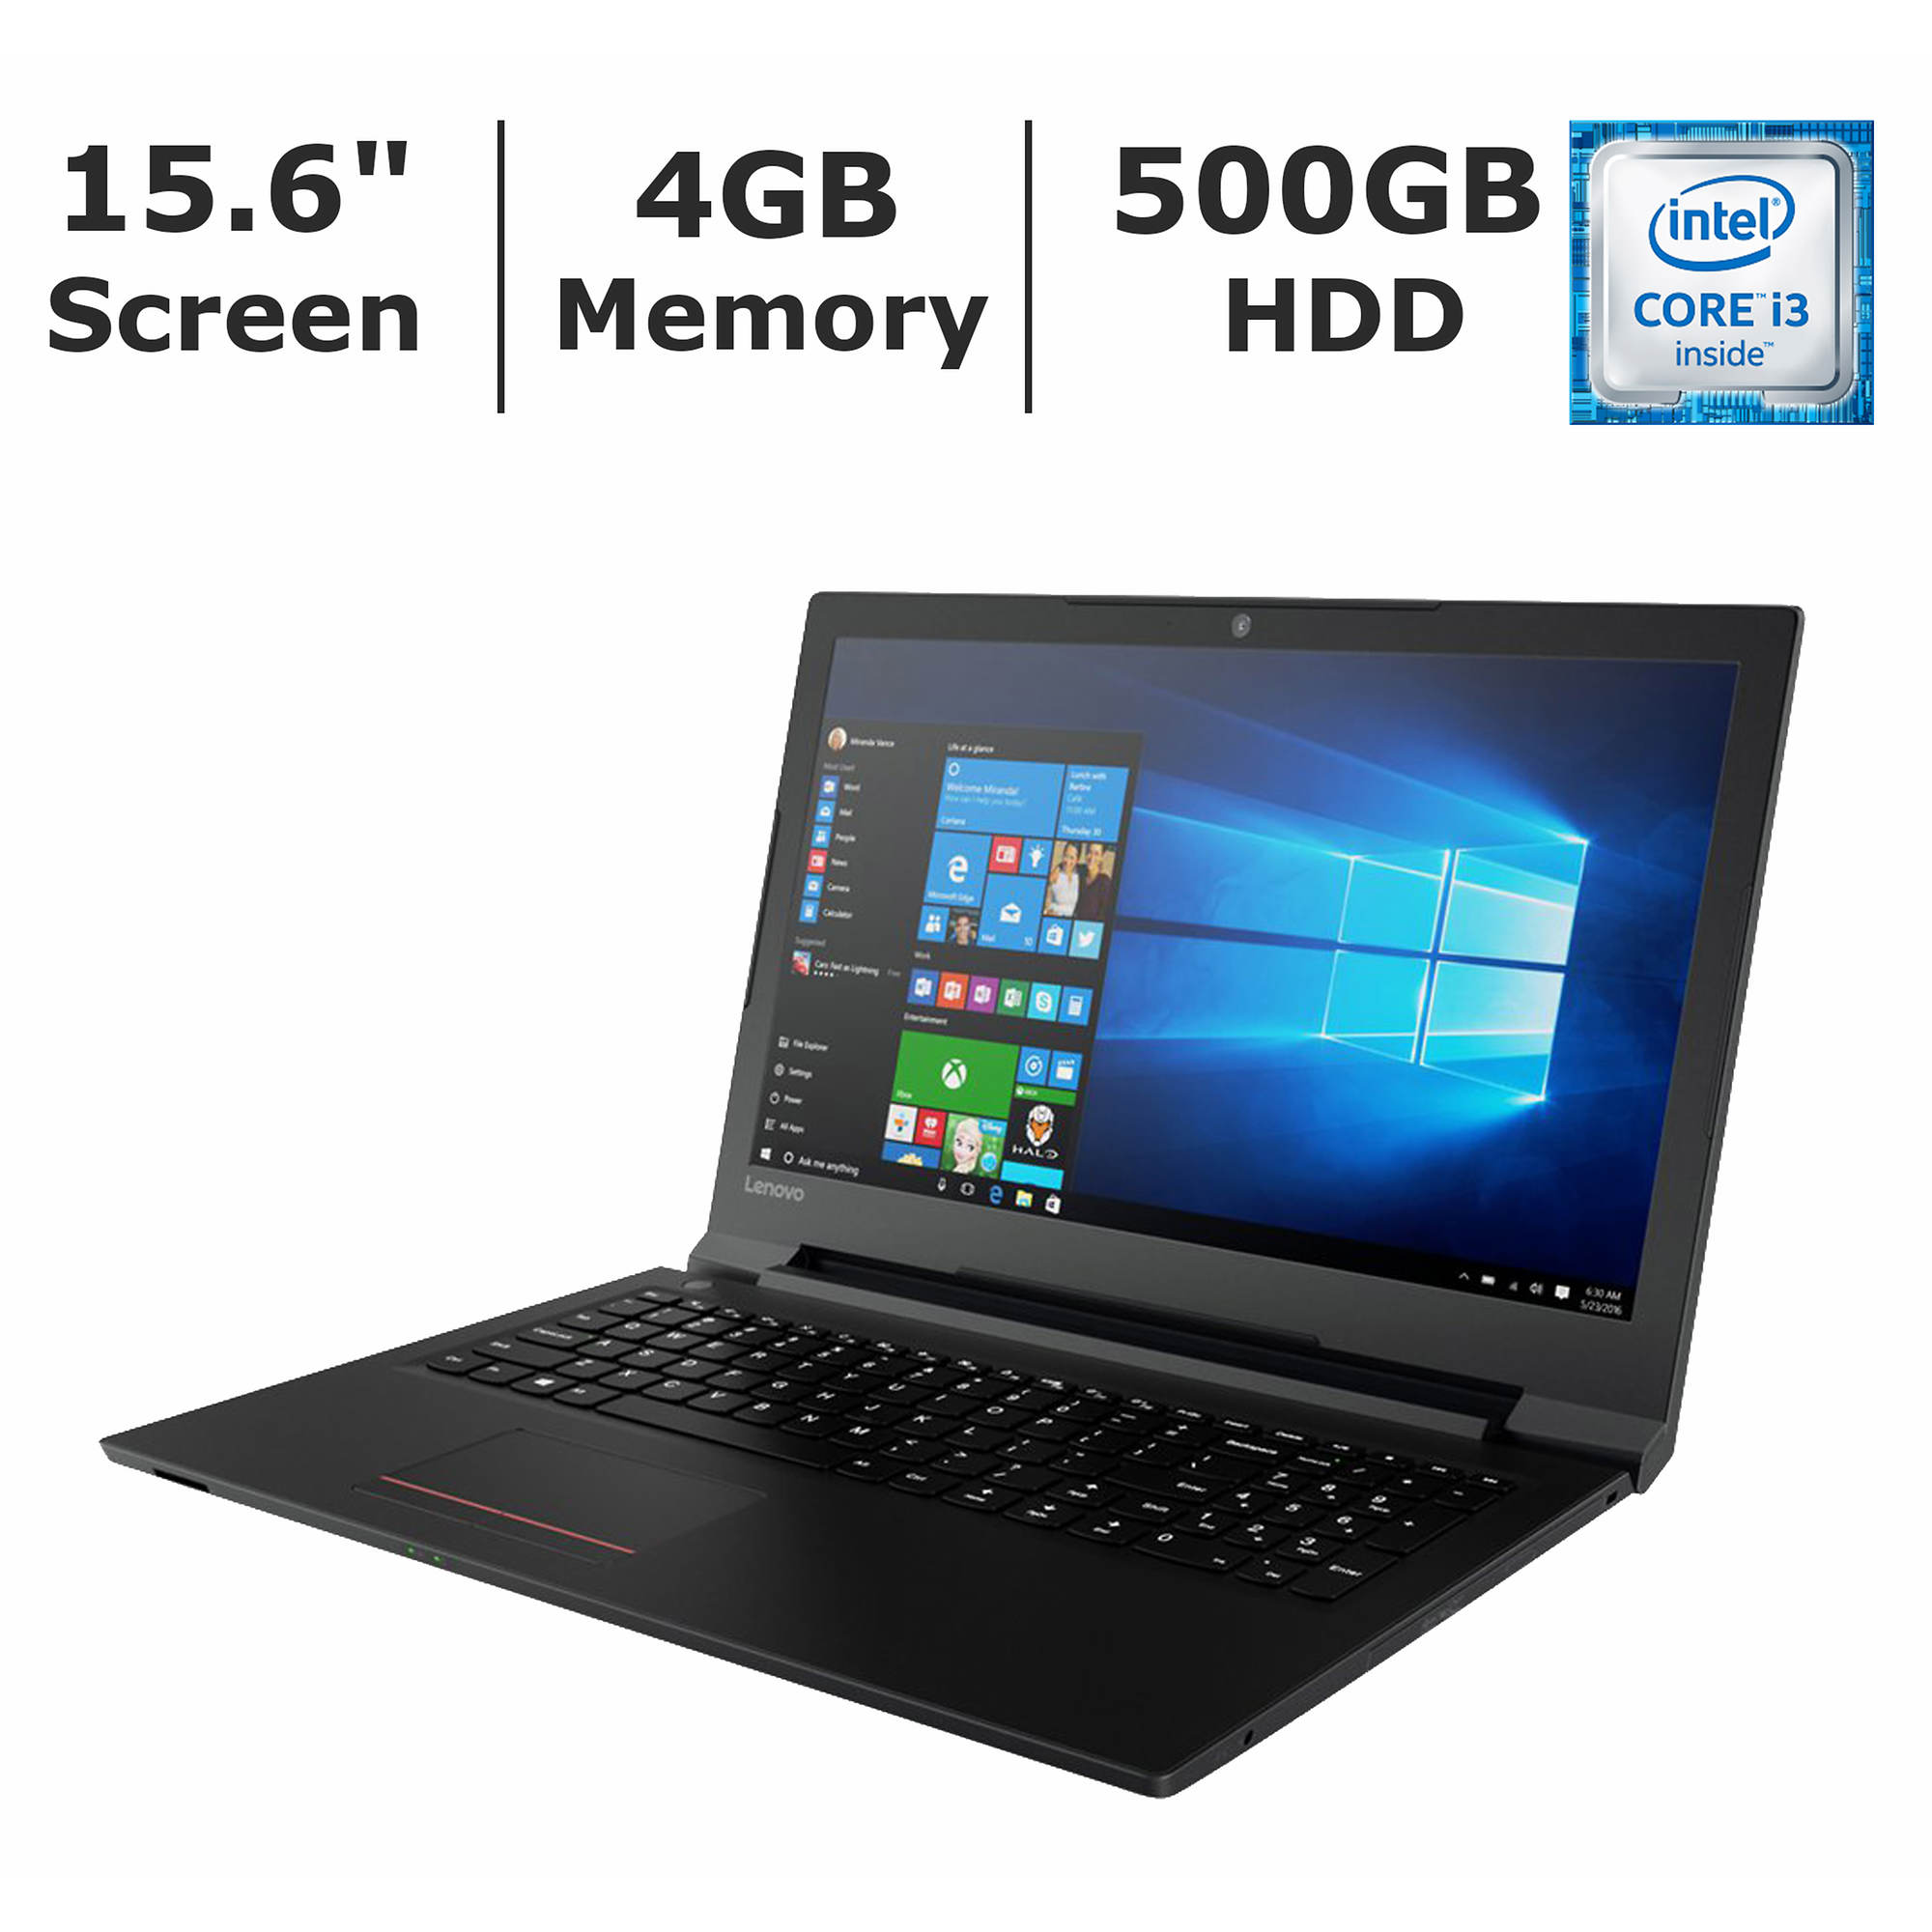 Lenovo V110-15ISK Laptop, Intel Core i3-6100U, 4GB Memory, 500GB Hard Drive